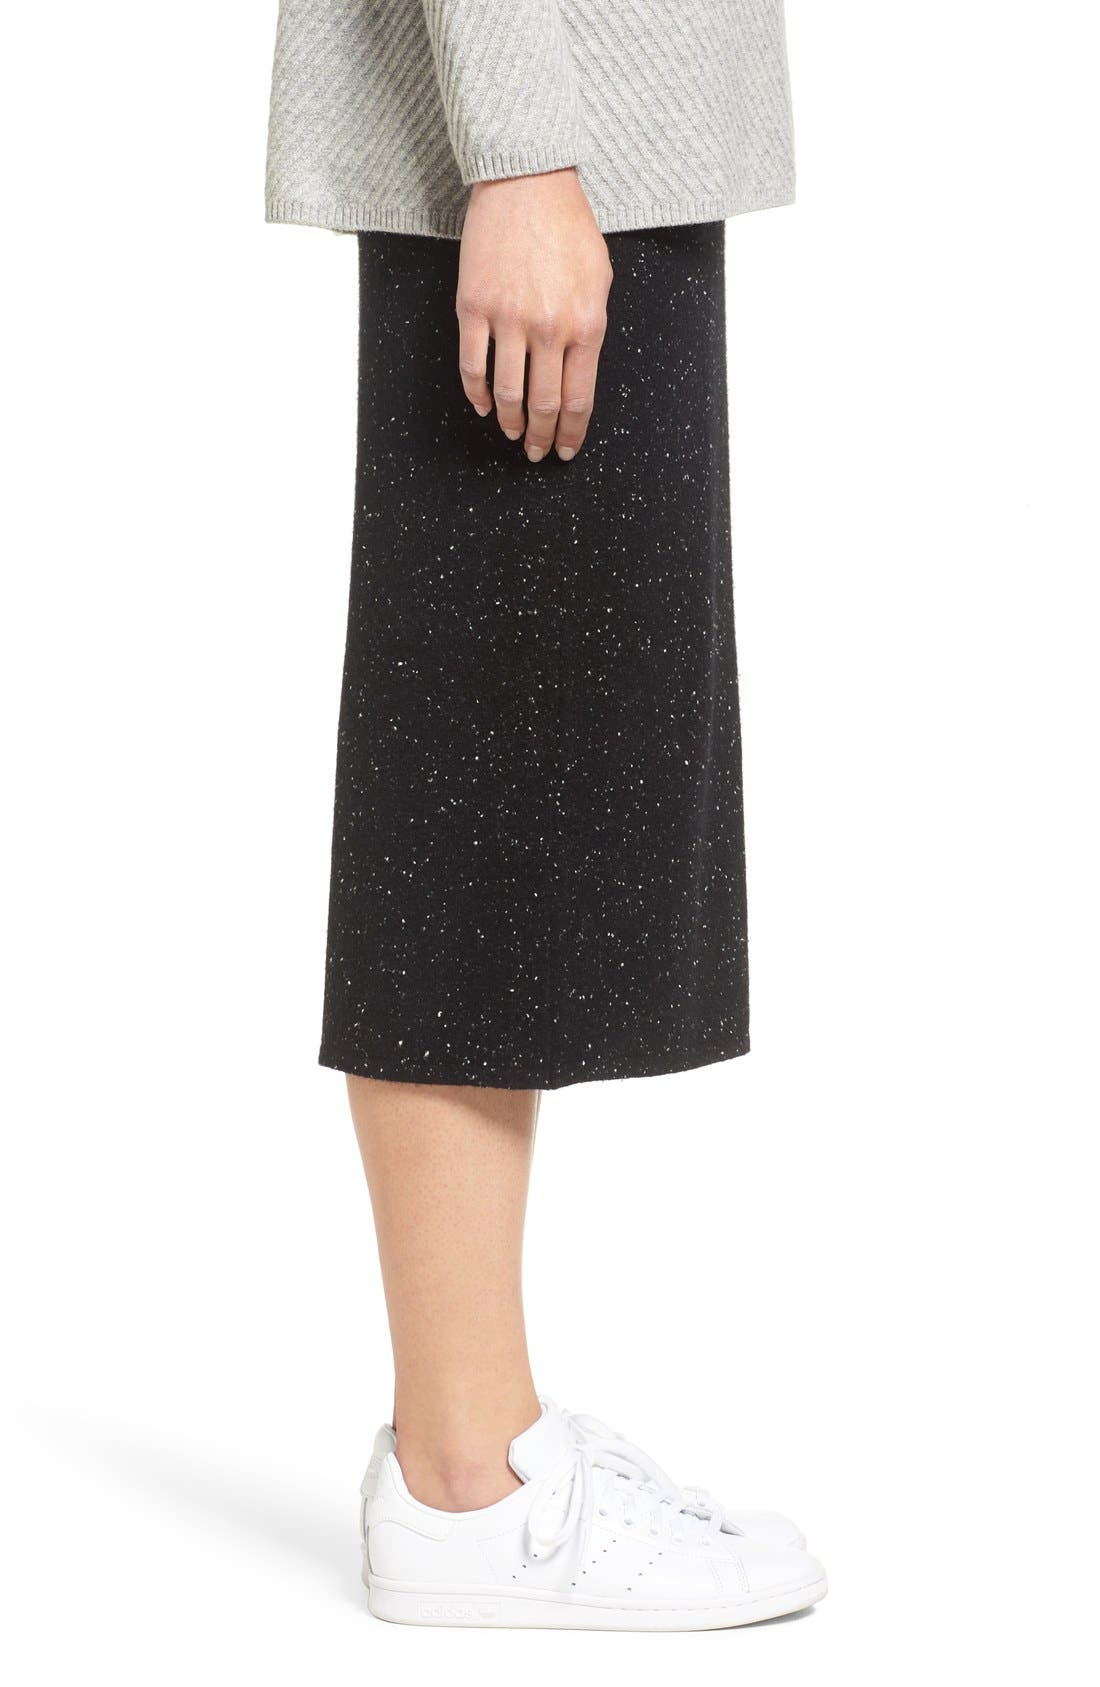 Cashmere Blend Knit Skirt,                             Alternate thumbnail 3, color,                             001